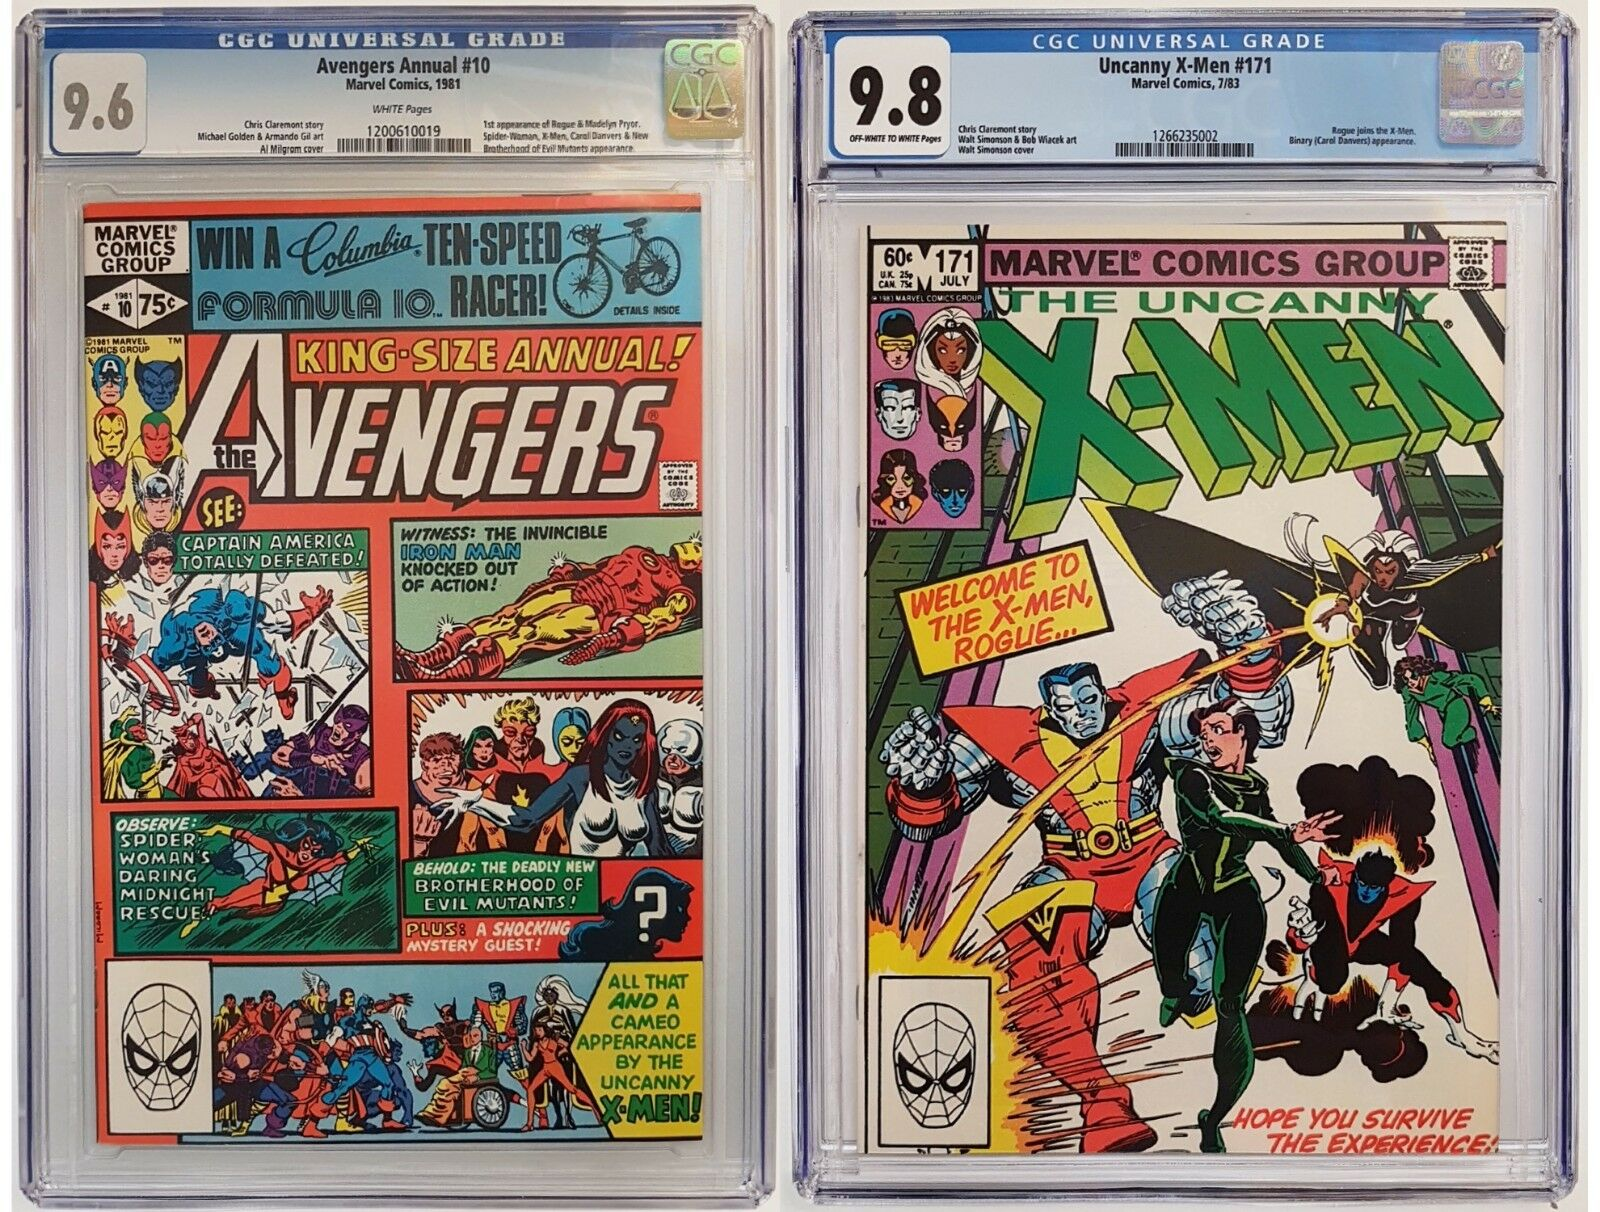 AVENGERS ANNUAL #10 CGC 9.6 & X-MEN #171 CGC #9.8 1st App ROGUE and Joins Team